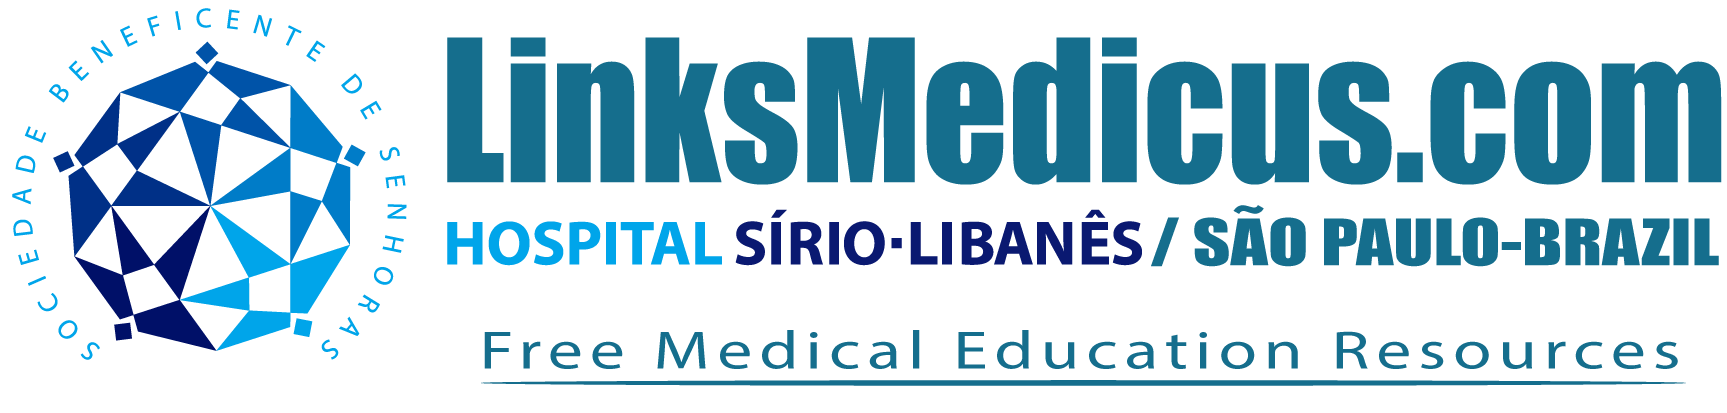 LinksMedicus